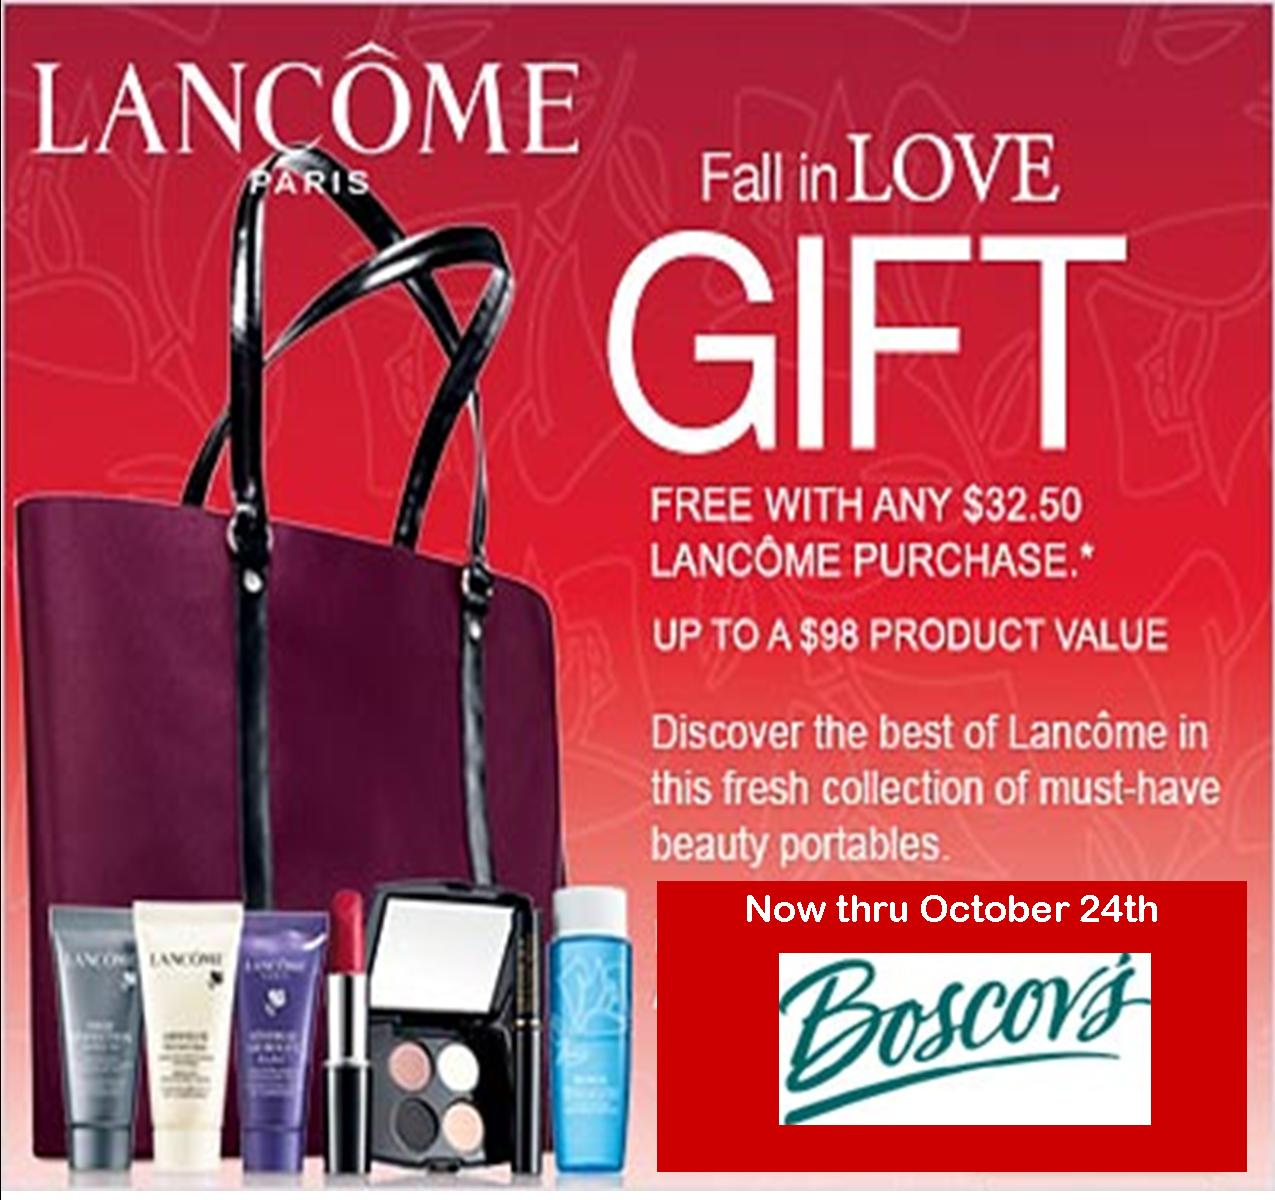 lancome gift with purchase at dillards cbt promo lancome gift